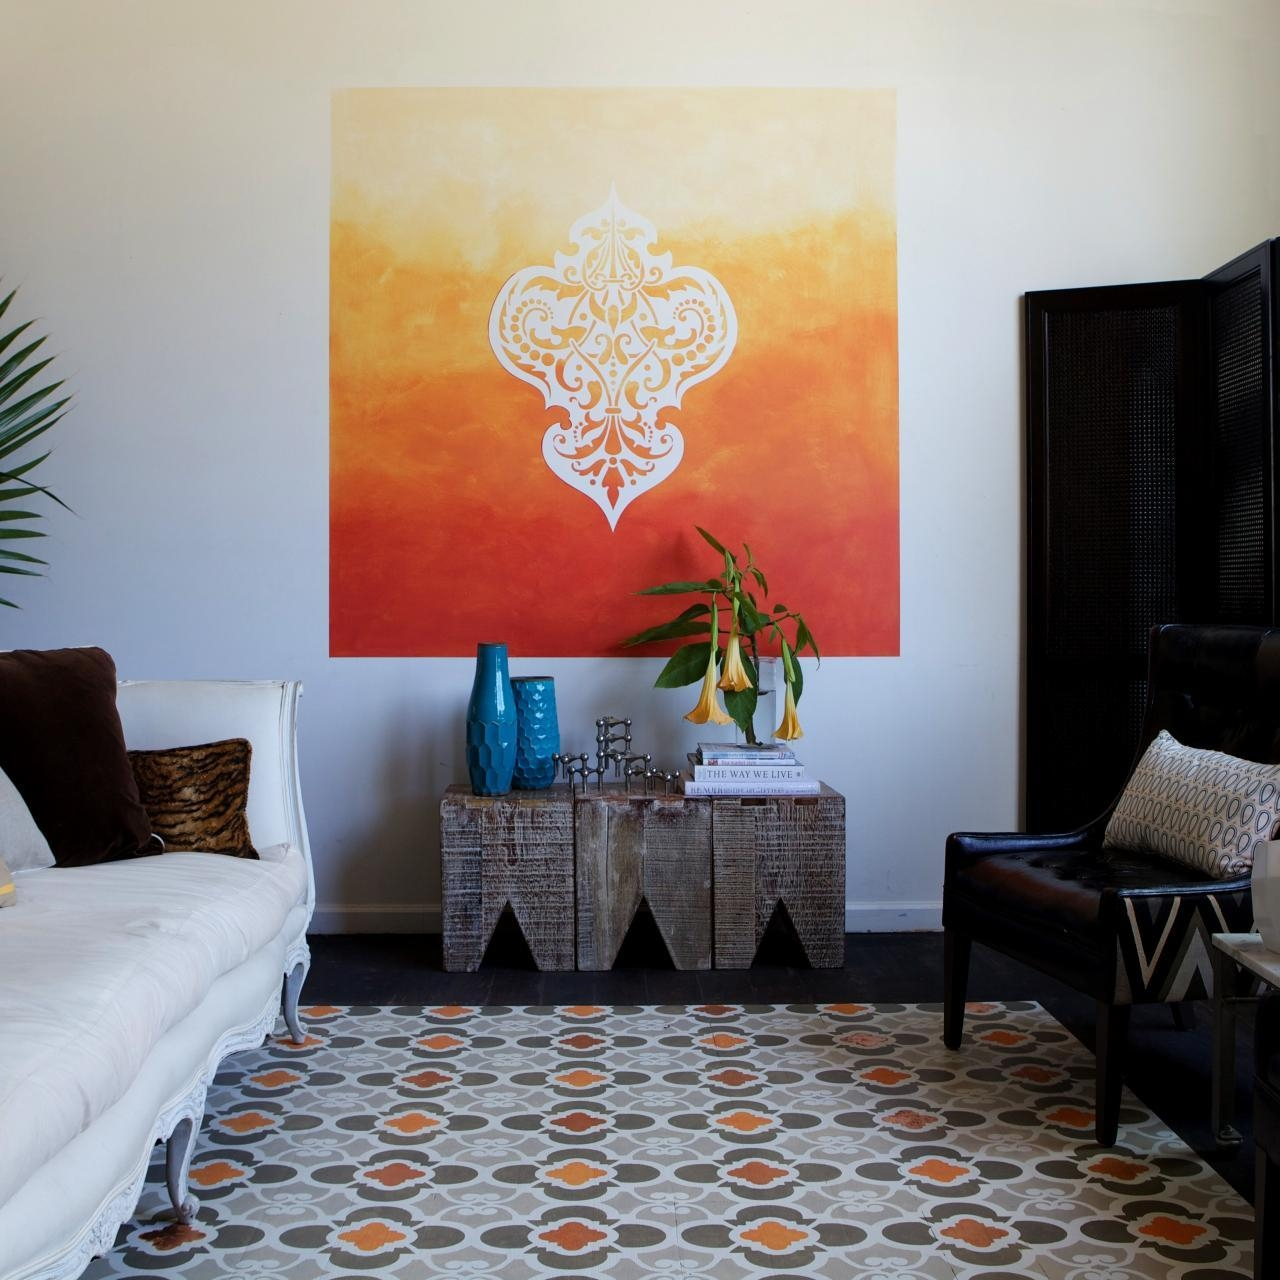 Learn How To Paint A Stenciled Ombre Wall Mural | How Tos | Diy Intended For Space Stencils For Walls (View 14 of 20)